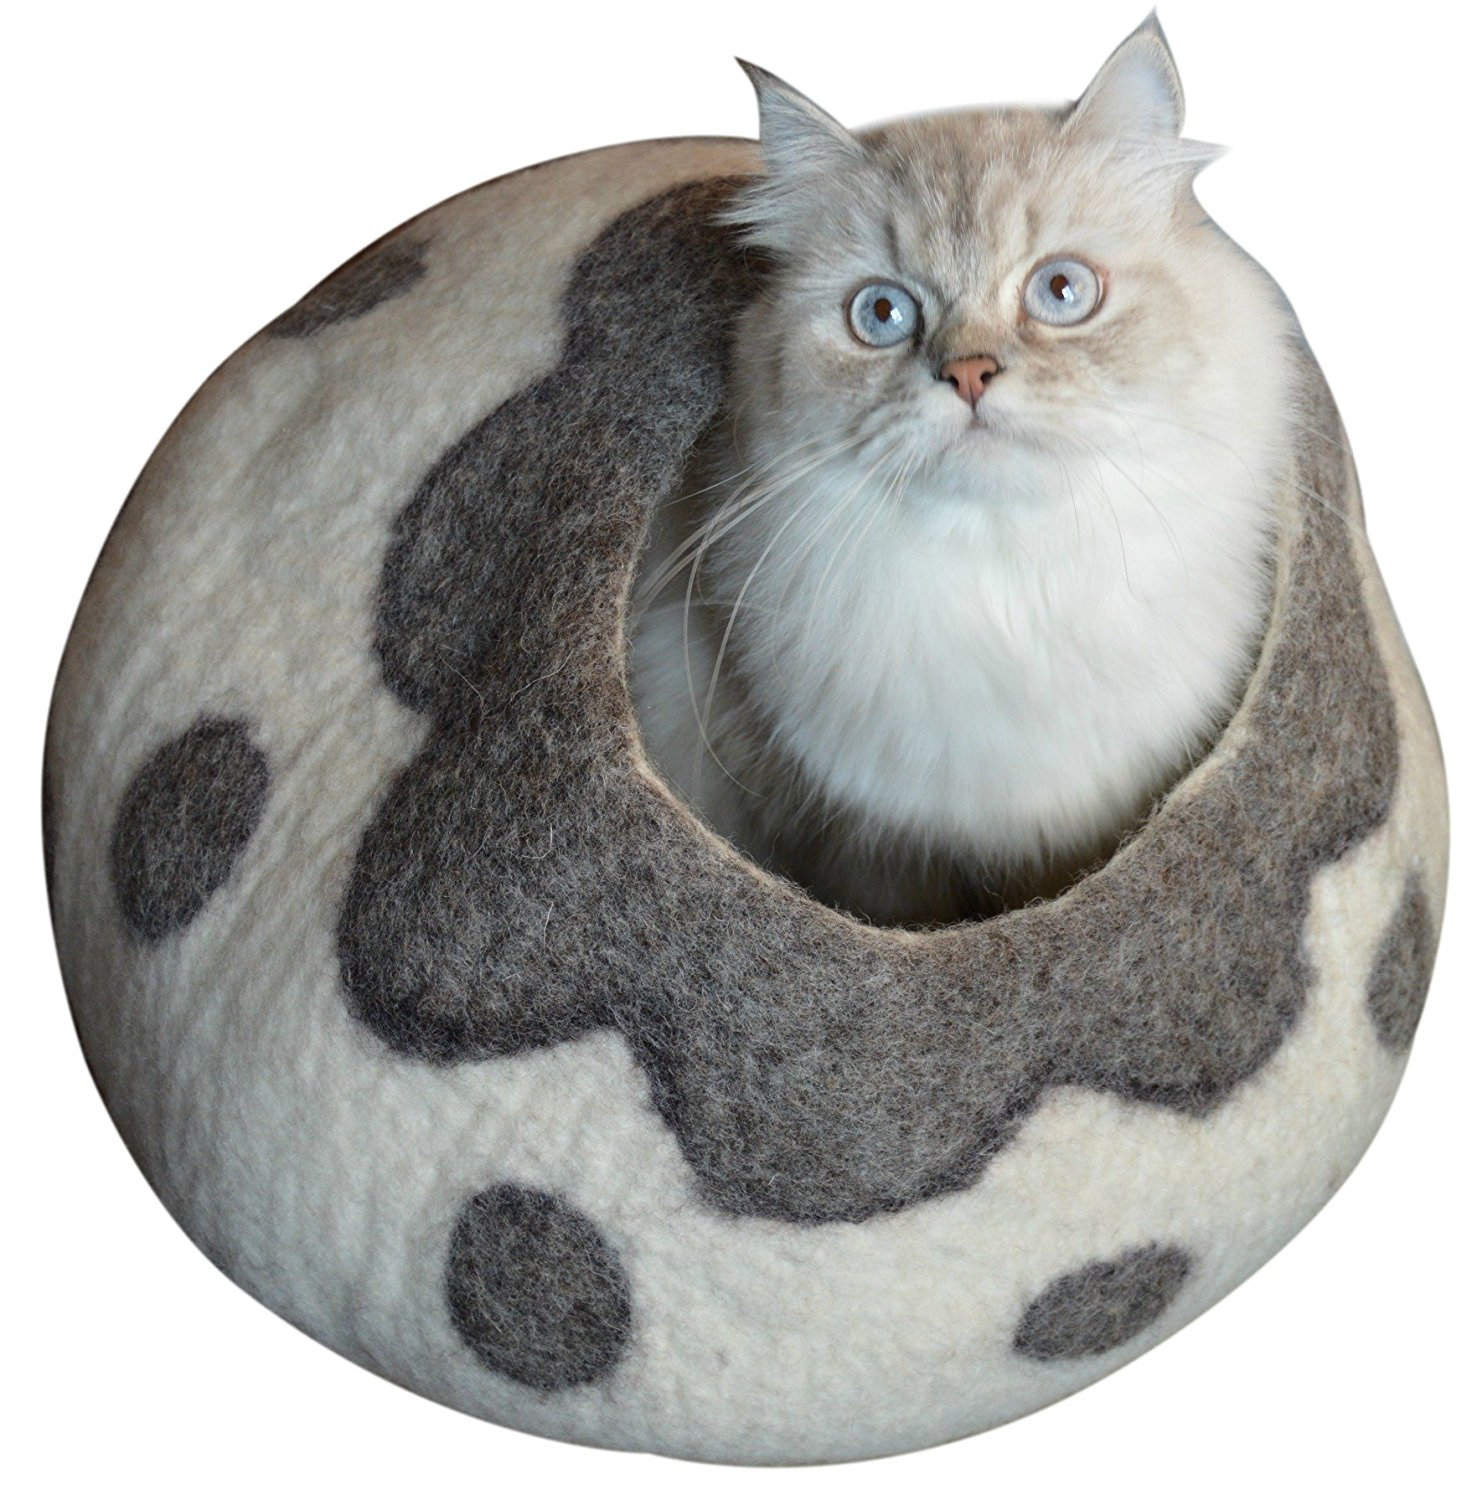 Best Cat Cave Bed, Unique Handmade Natural Felted Merino Wool, Large Covered and Cozy, Also Perfect for Kittens, Includes Bonus Catnip By Earthtone Solutions